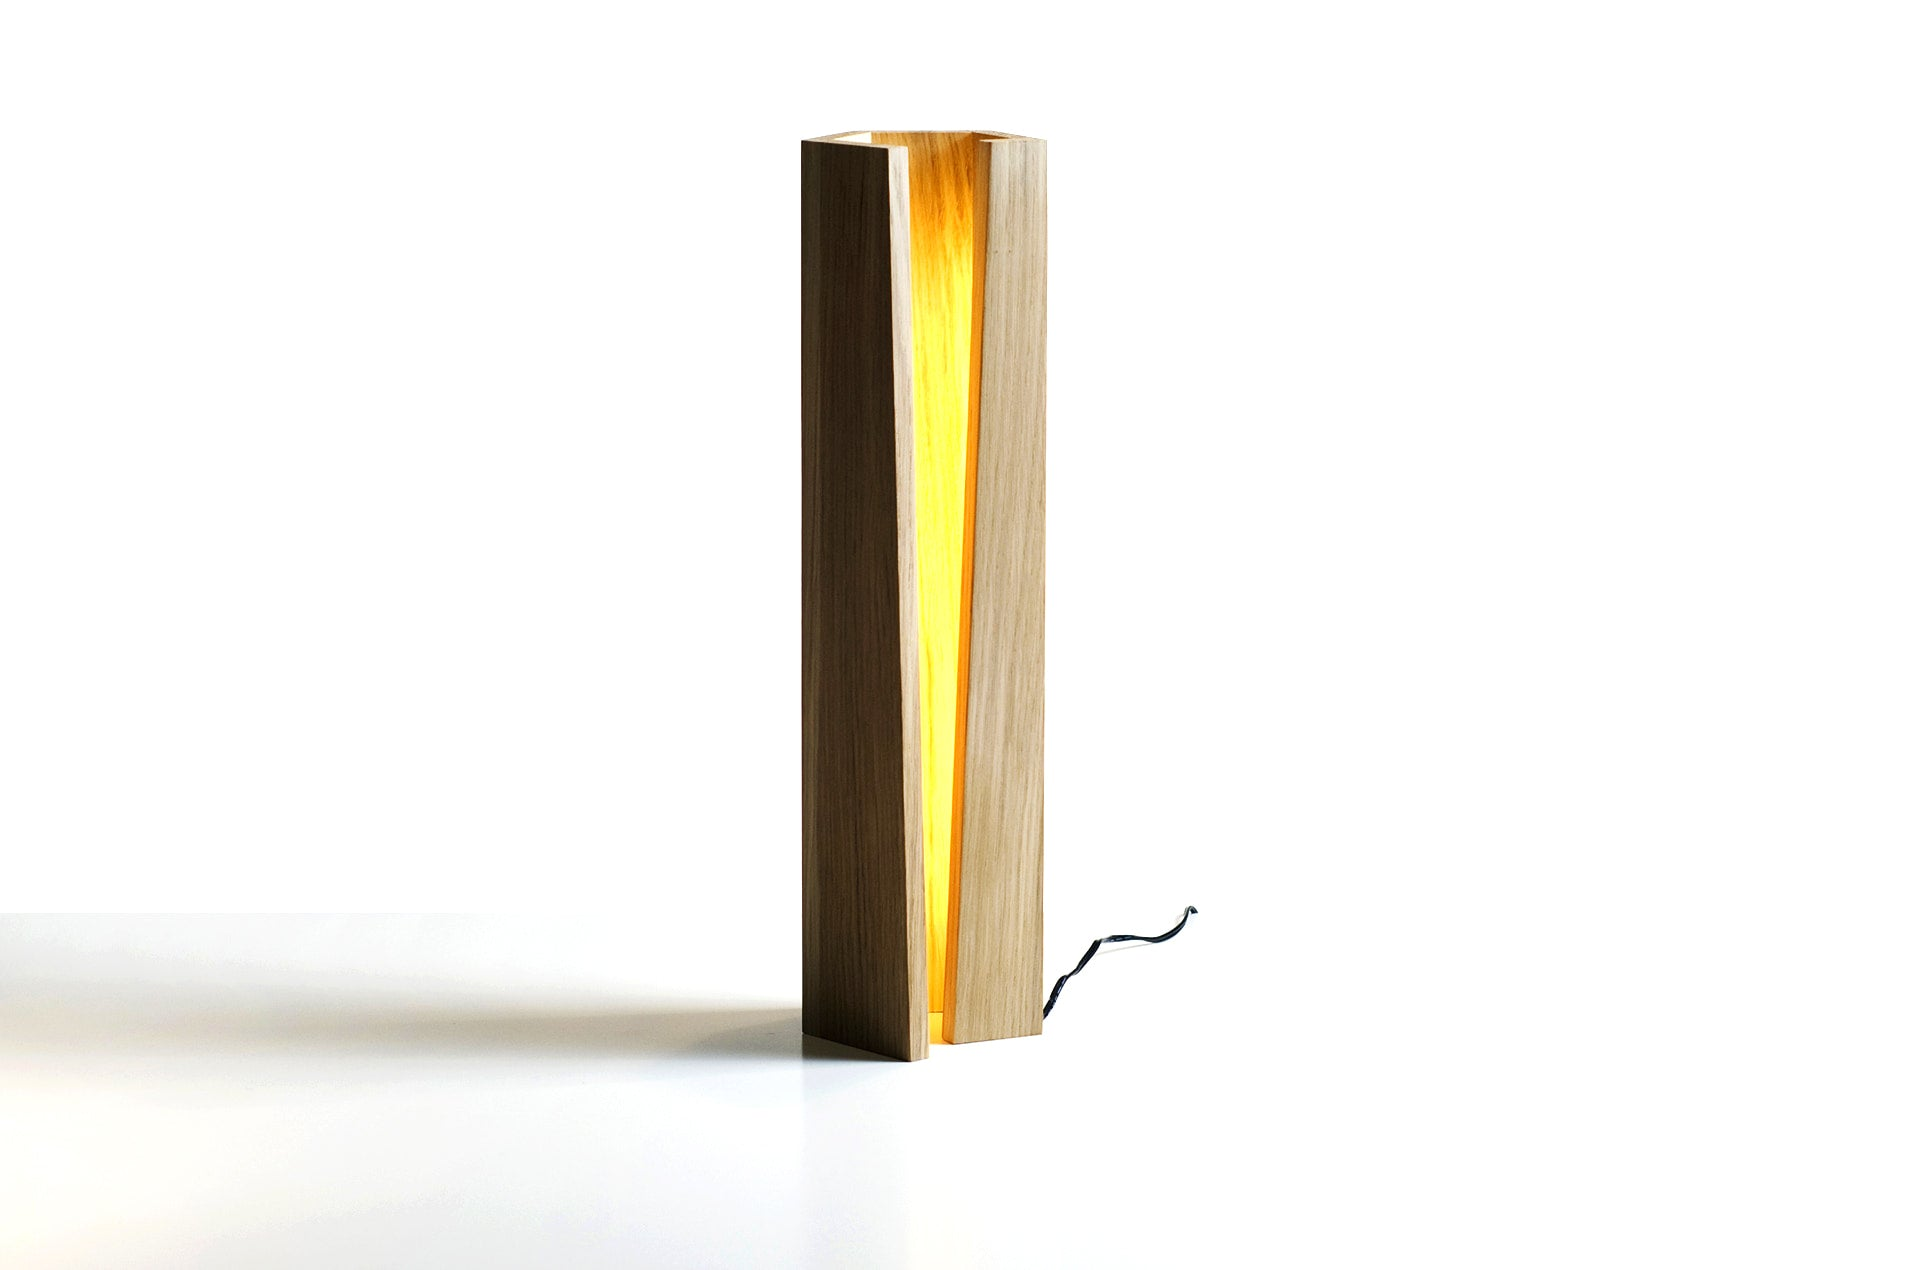 Lampe de table, Elagone chêne by Elomax | PARIDEO design durable